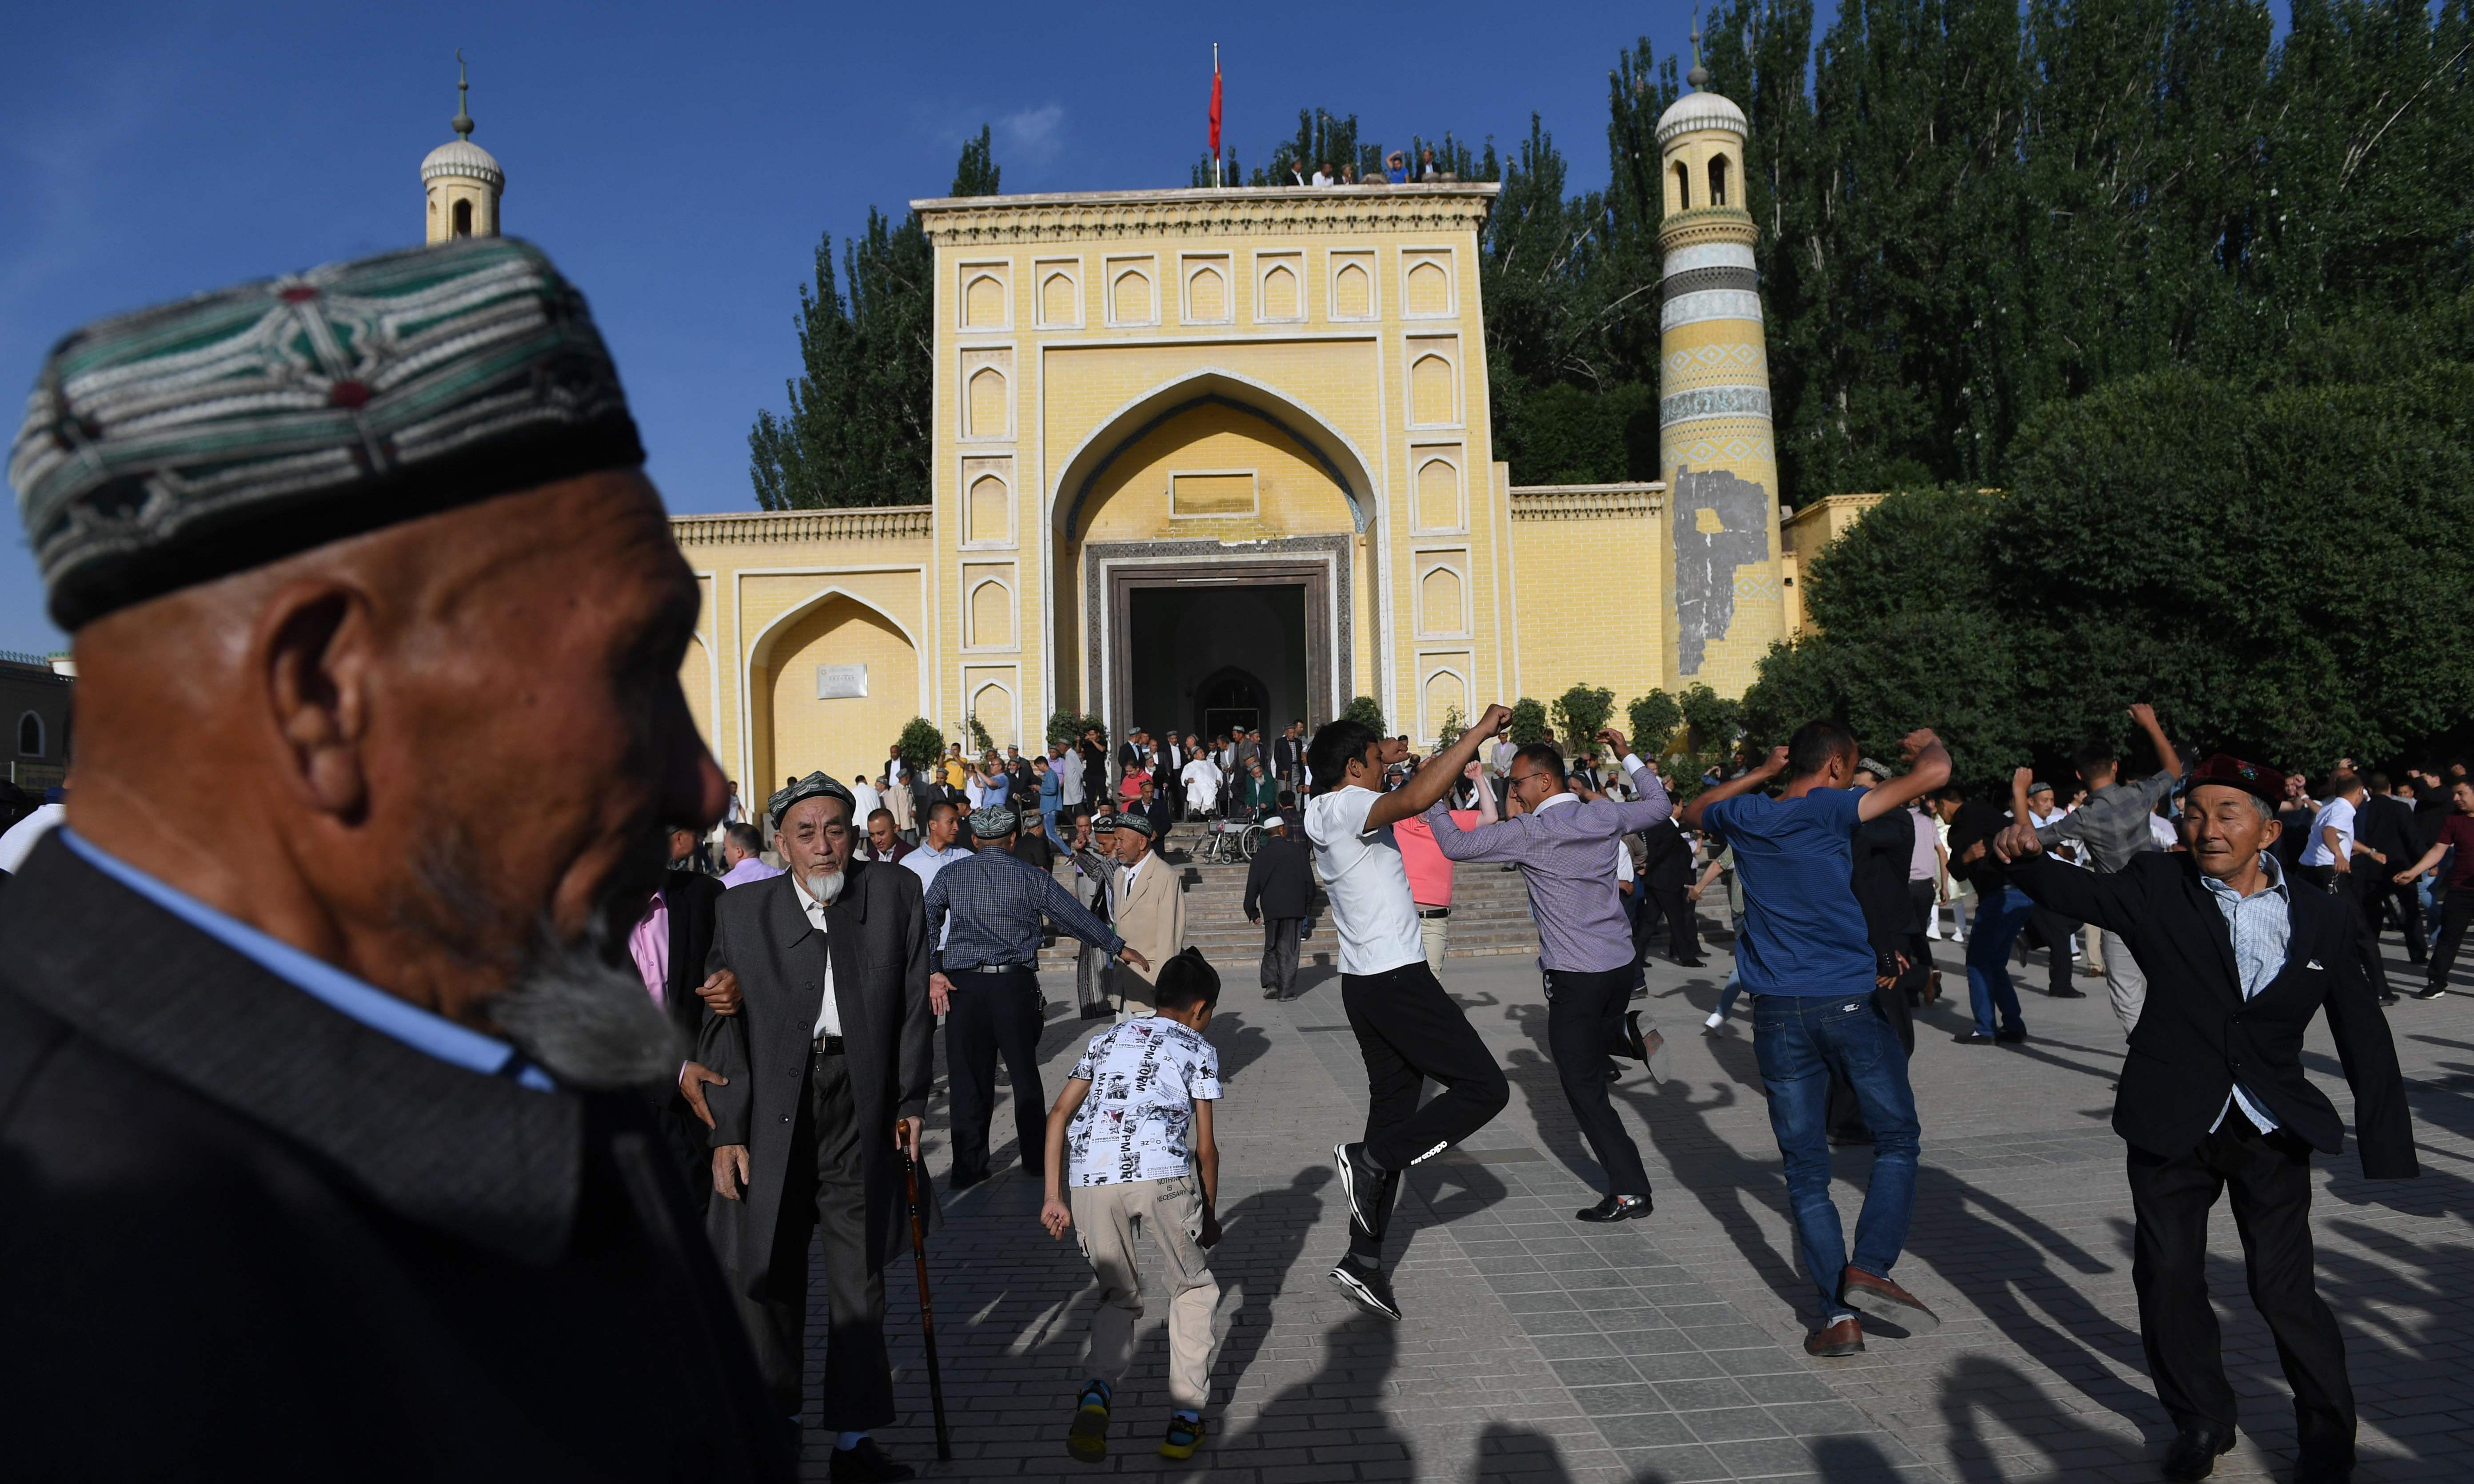 China denies Uighurs' Turkic descent and says 'hostile forces' trying to split country